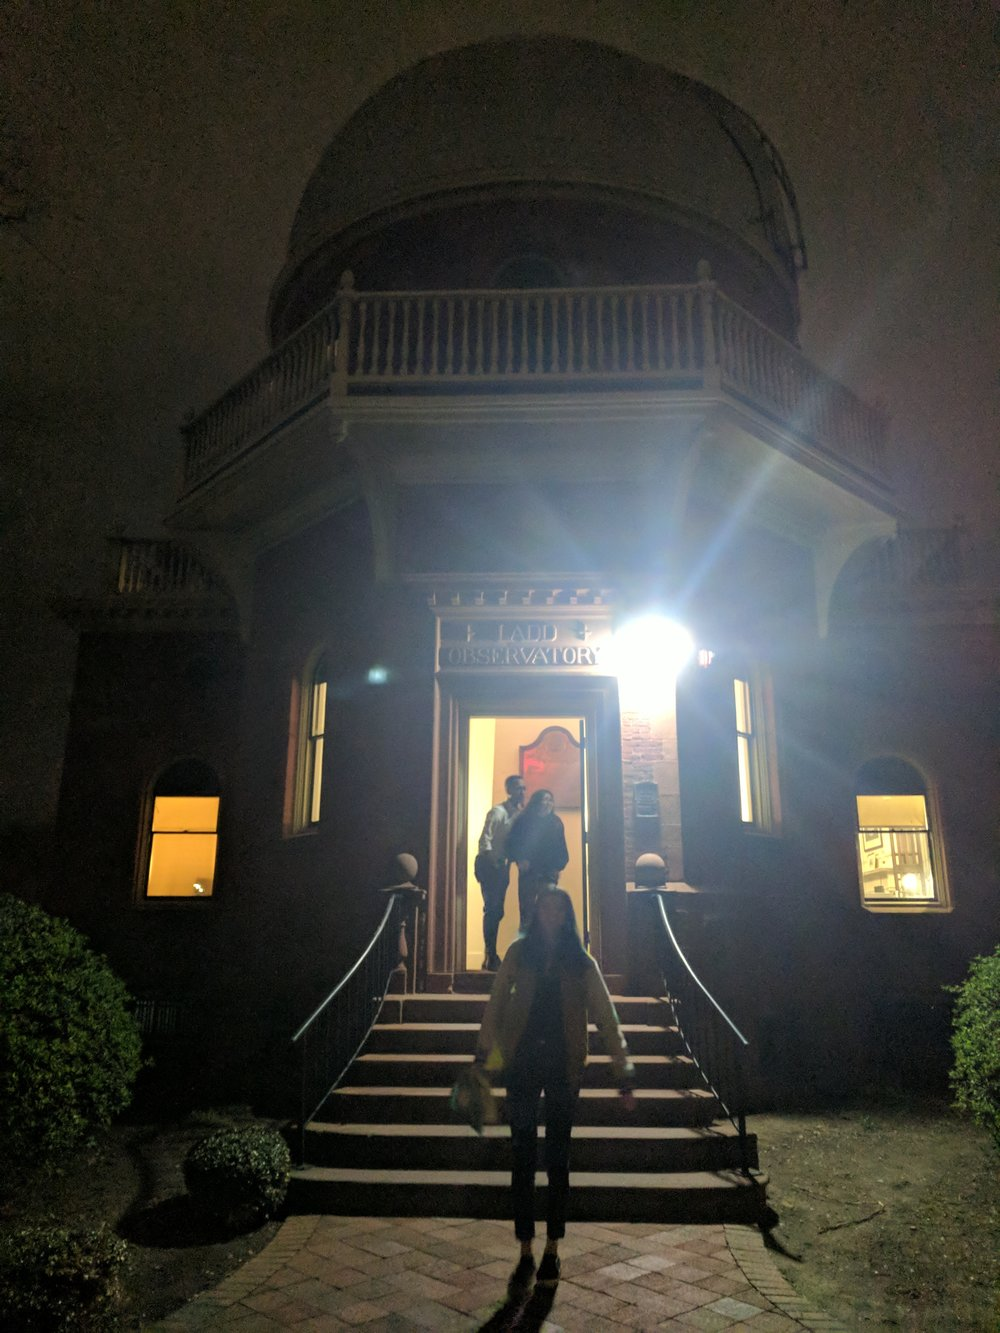 Here's an extraordinarily blurry picture of me in front of the observatory as proof of my visit haha